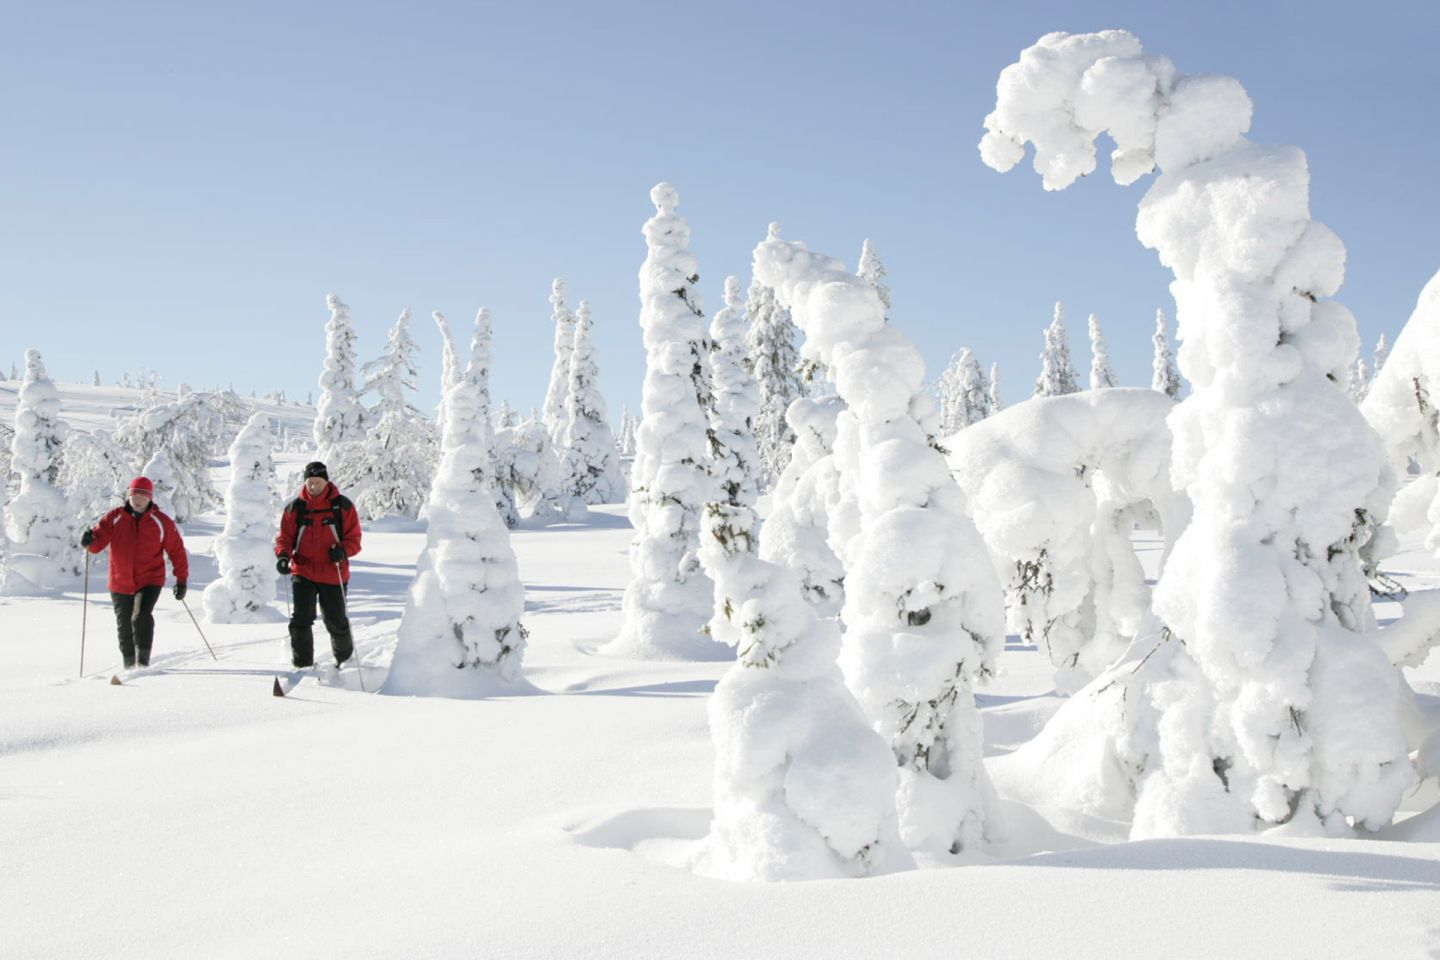 People skiing in snowy forest in Posio, Finland